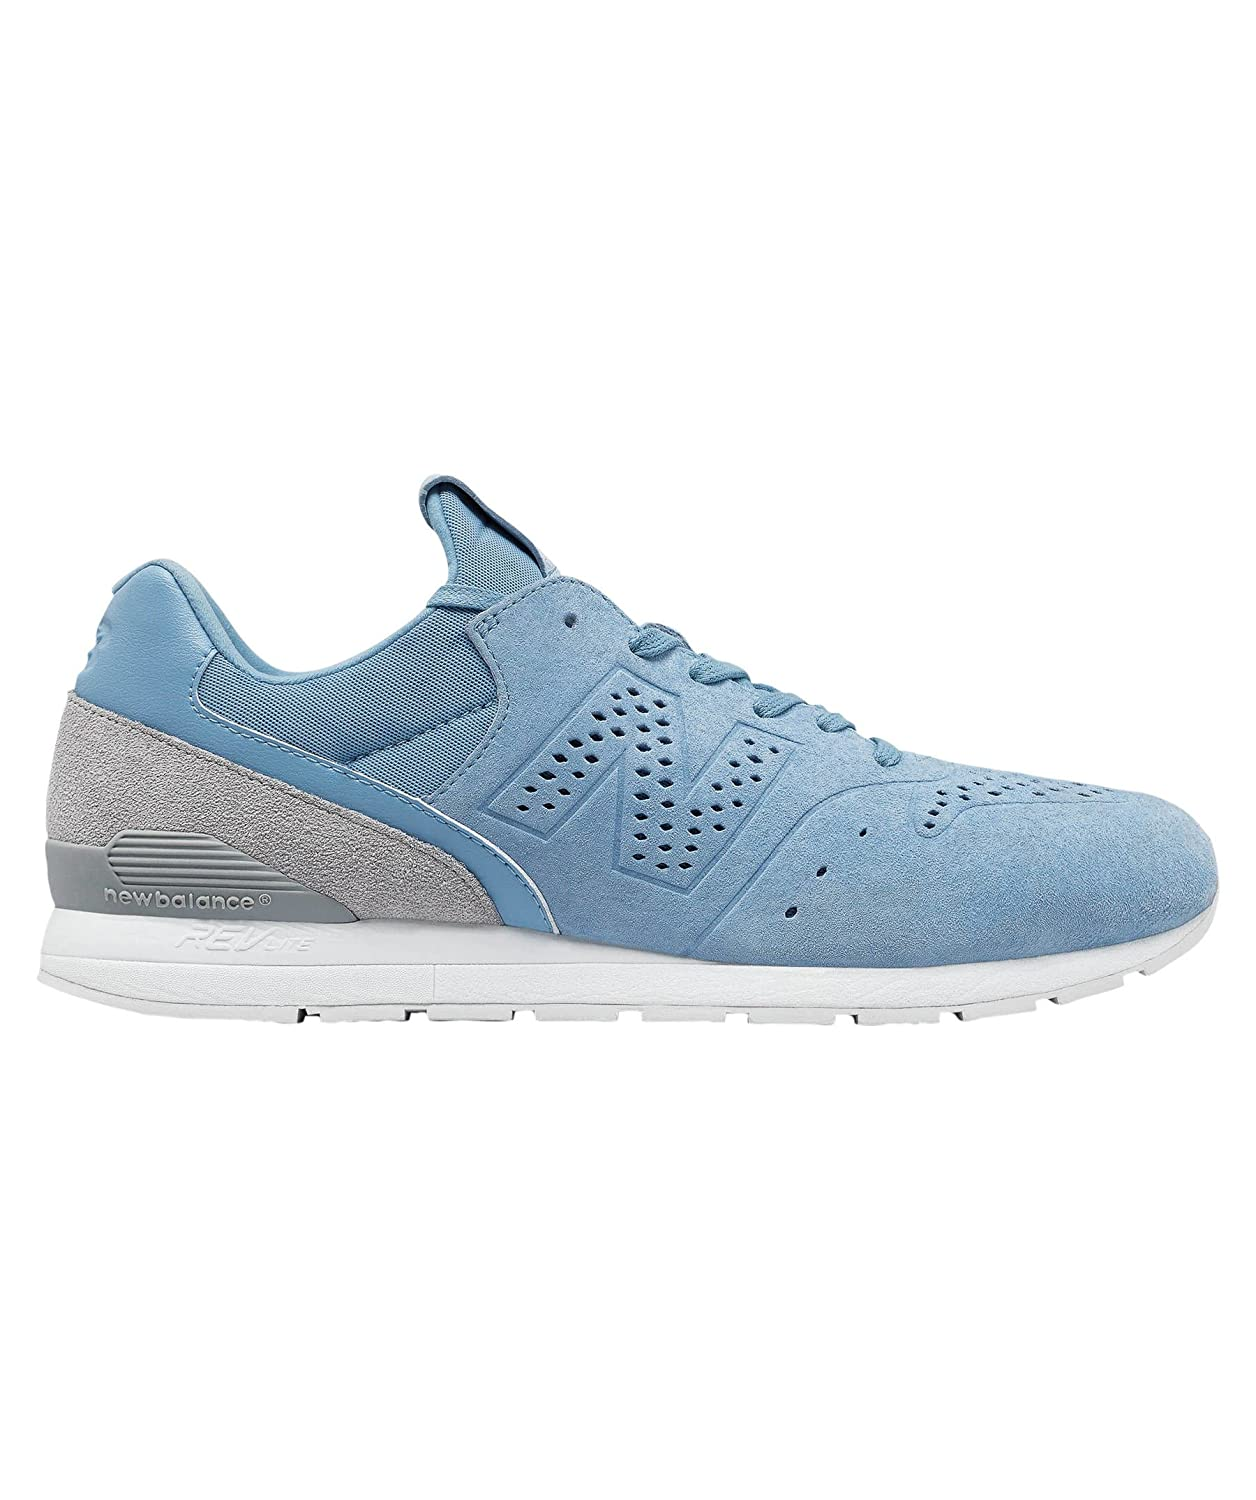 New Balance Re Engineered Pale Blue Suede Trainers